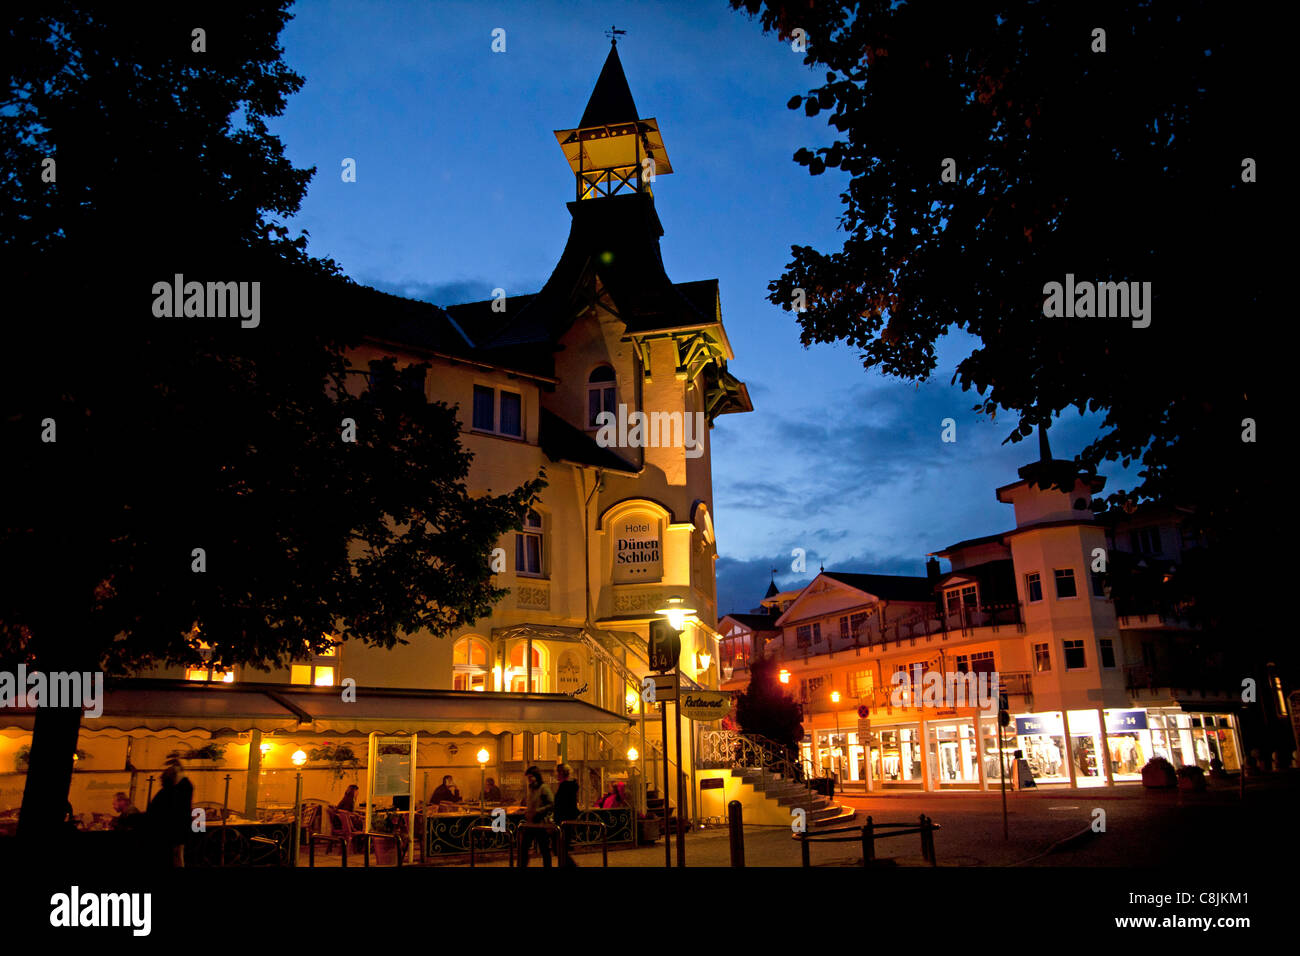 special historist style Architecture Baederarchitektur of Hotel Duenen Schloss in  Zinnowitz, Usedom island, Germany Stock Photo